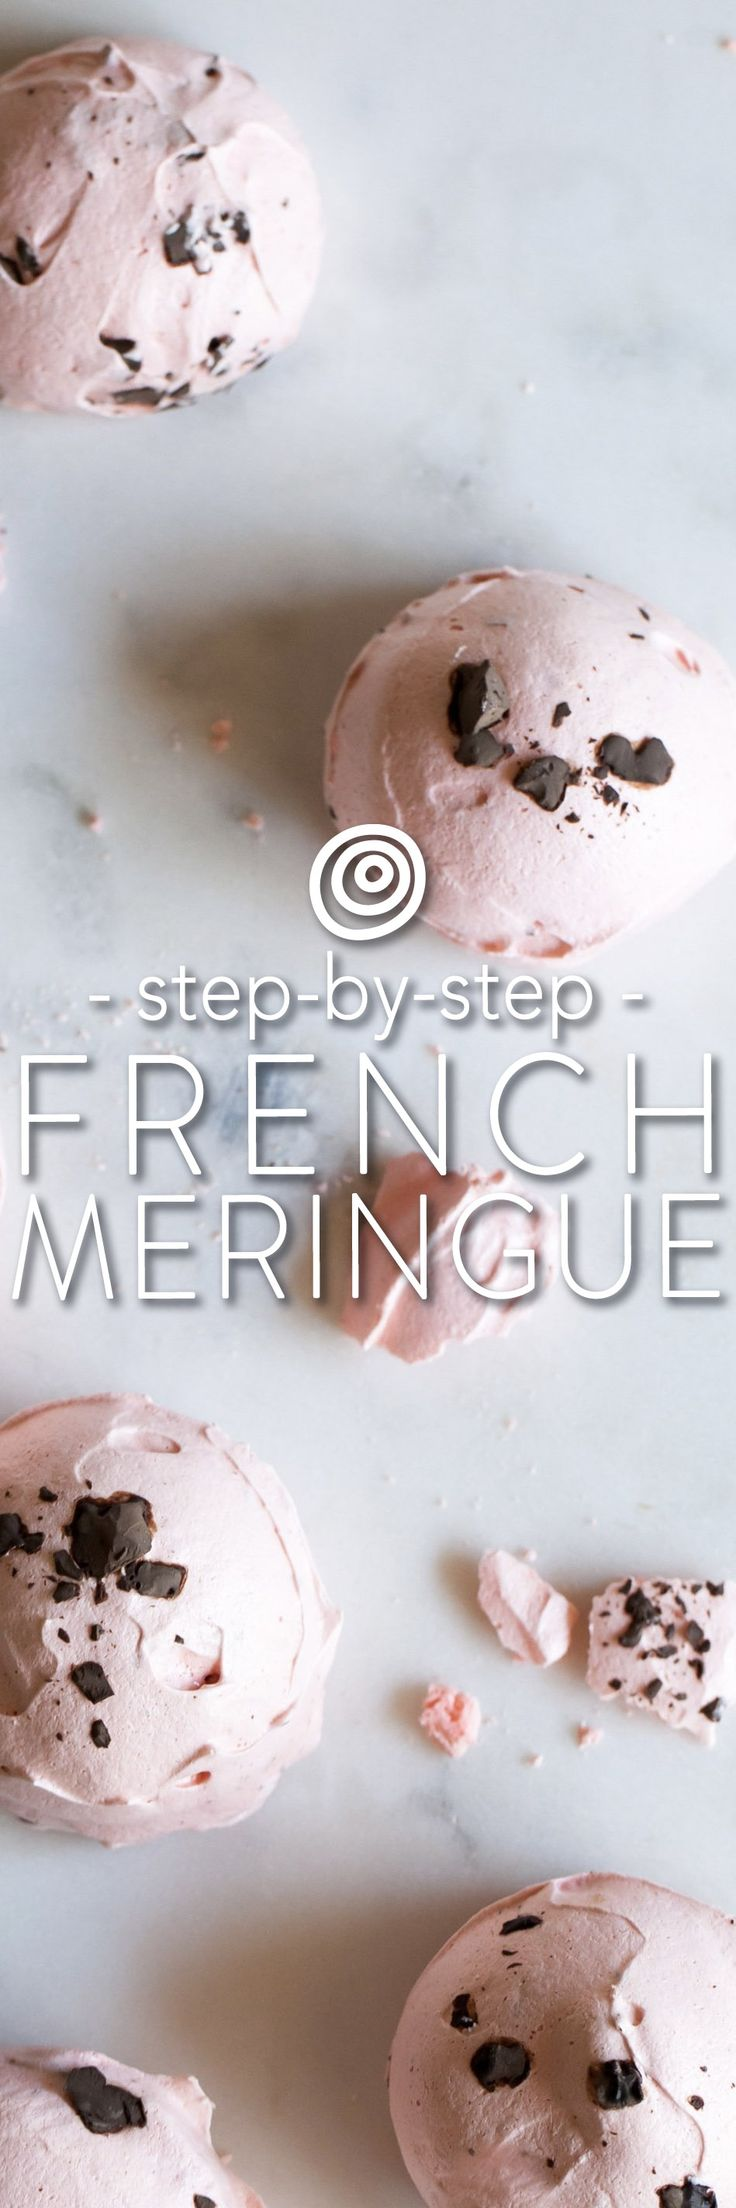 How to Make a French Meringue Cookies Recipe. So simple, easy, and pure, meringues are the lightest, almost cloud-like cookies and pastries with a crisp outer shell, and slightly chewy interior. This is one of those classic must know recipes.